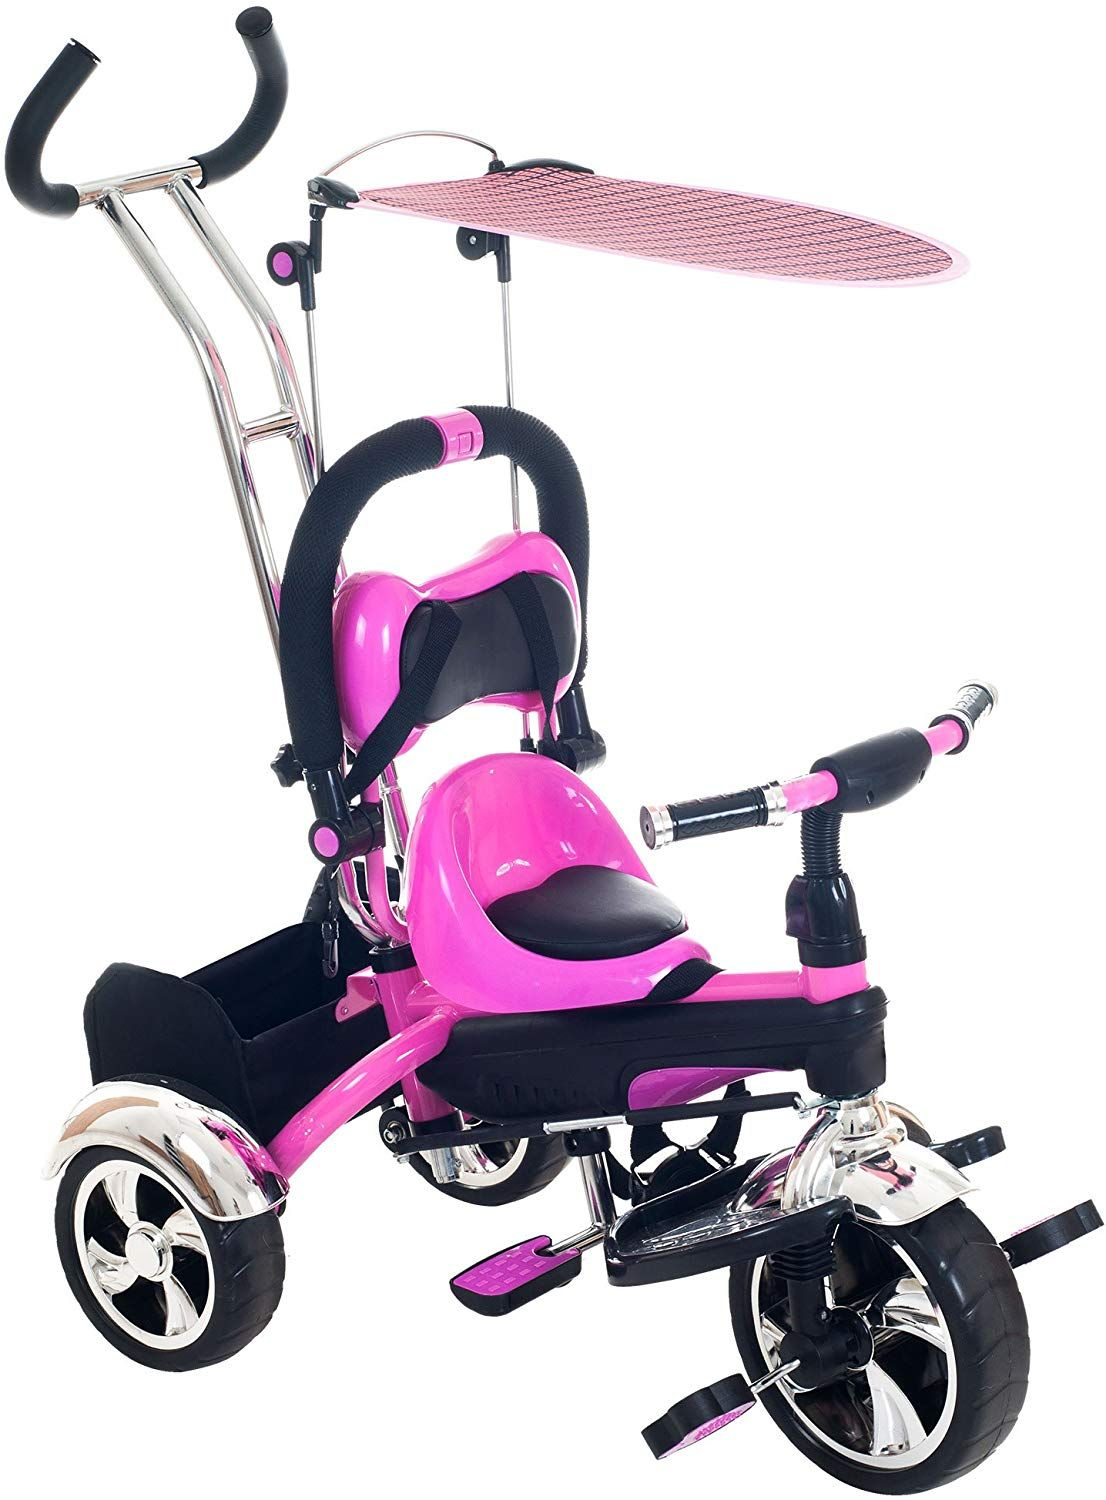 Tricycle Stroller Bike, 31 Stroller with Removable Canopy